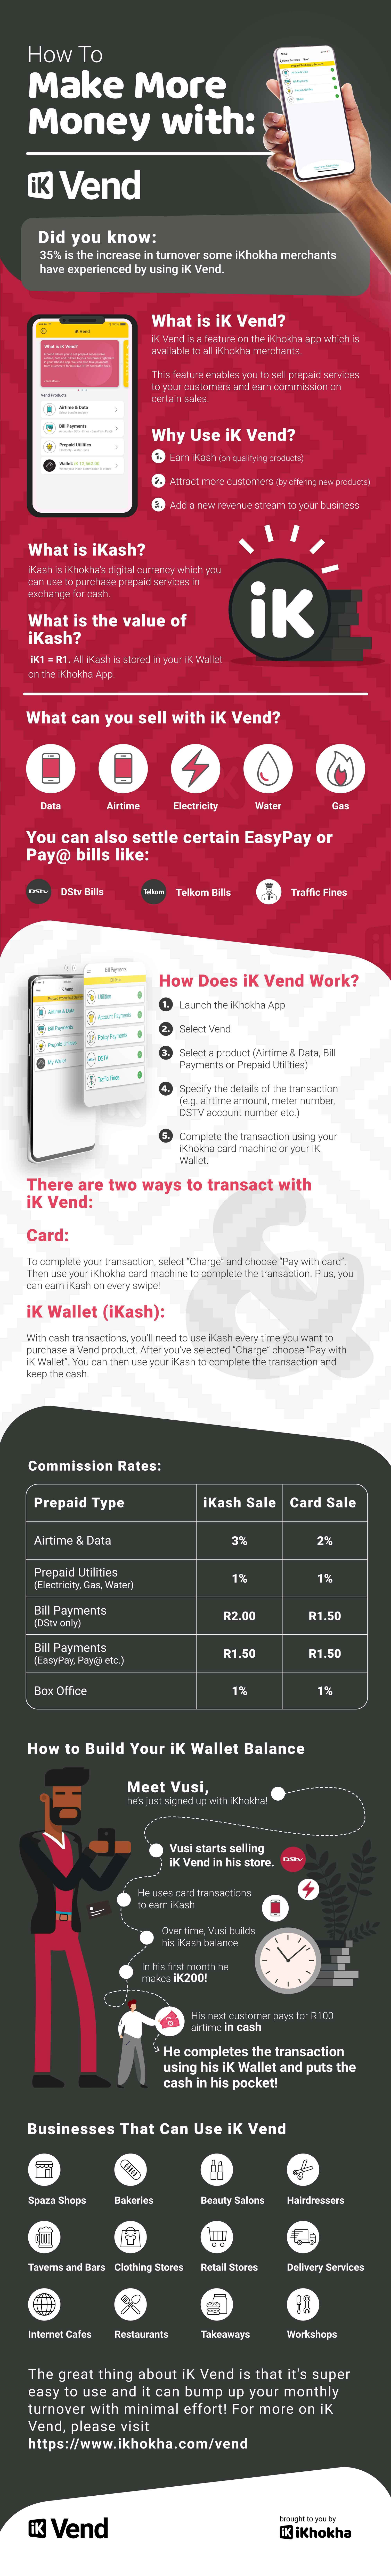 Vend-Infographic